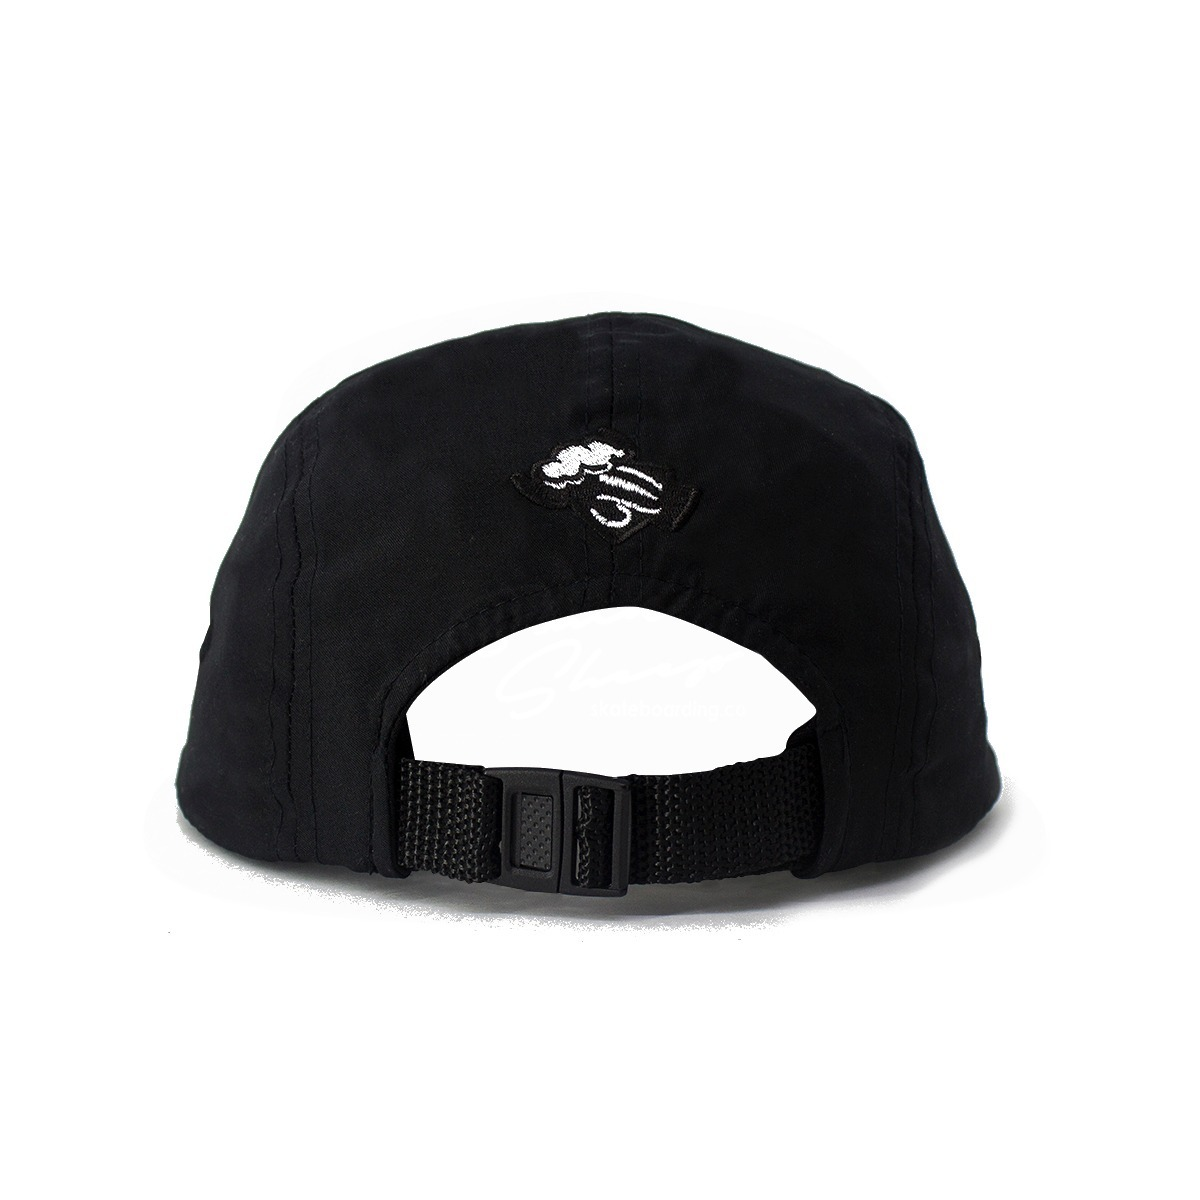 Bone Black Sheep Five Panel Patch Preto Original - R  57 261a89926e8